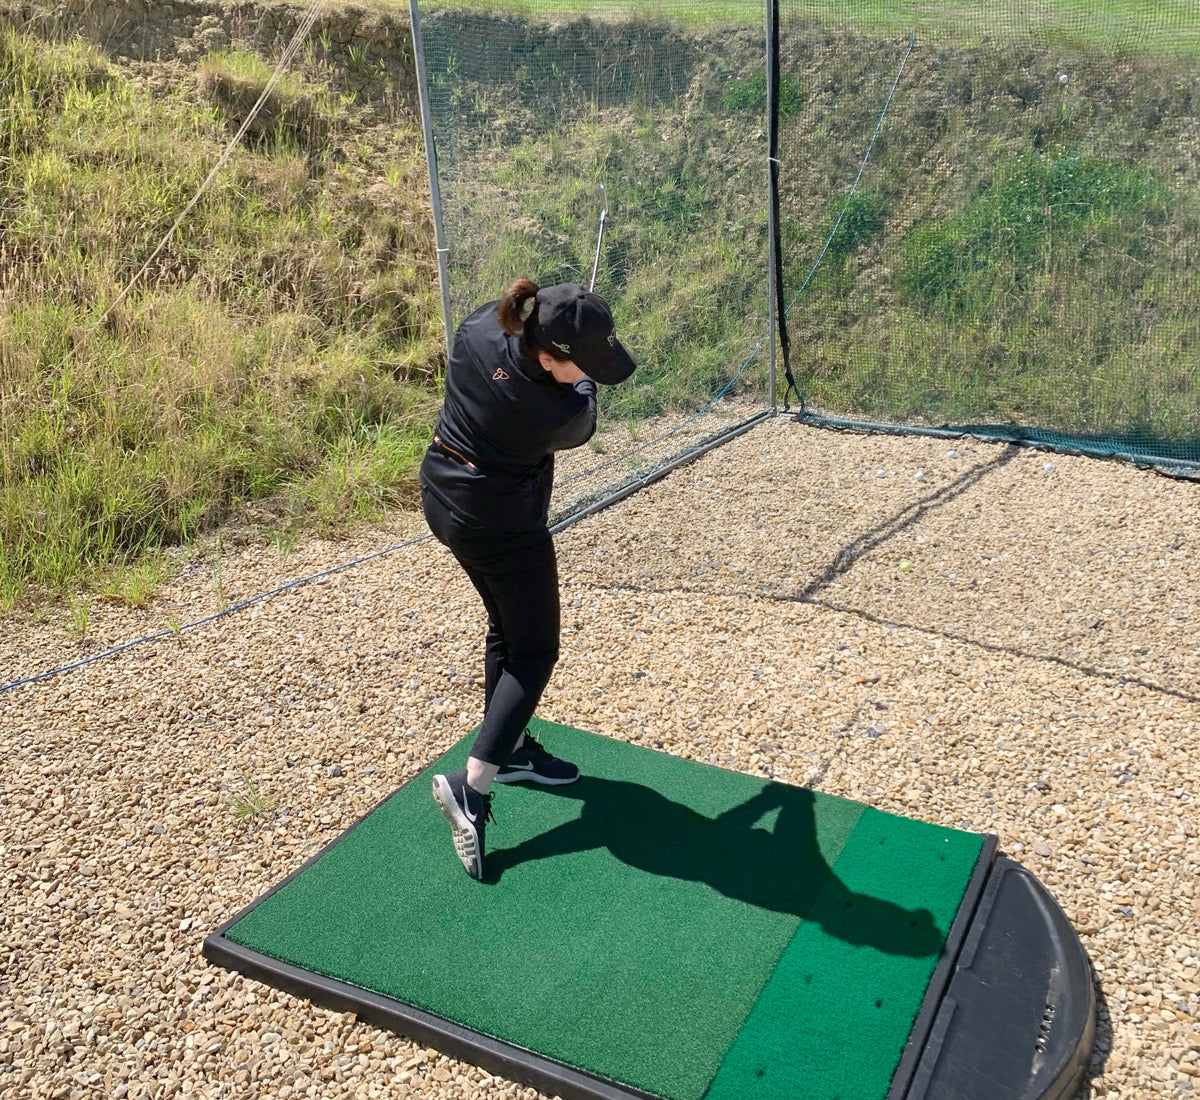 Boudavida blog Anabel practising golf